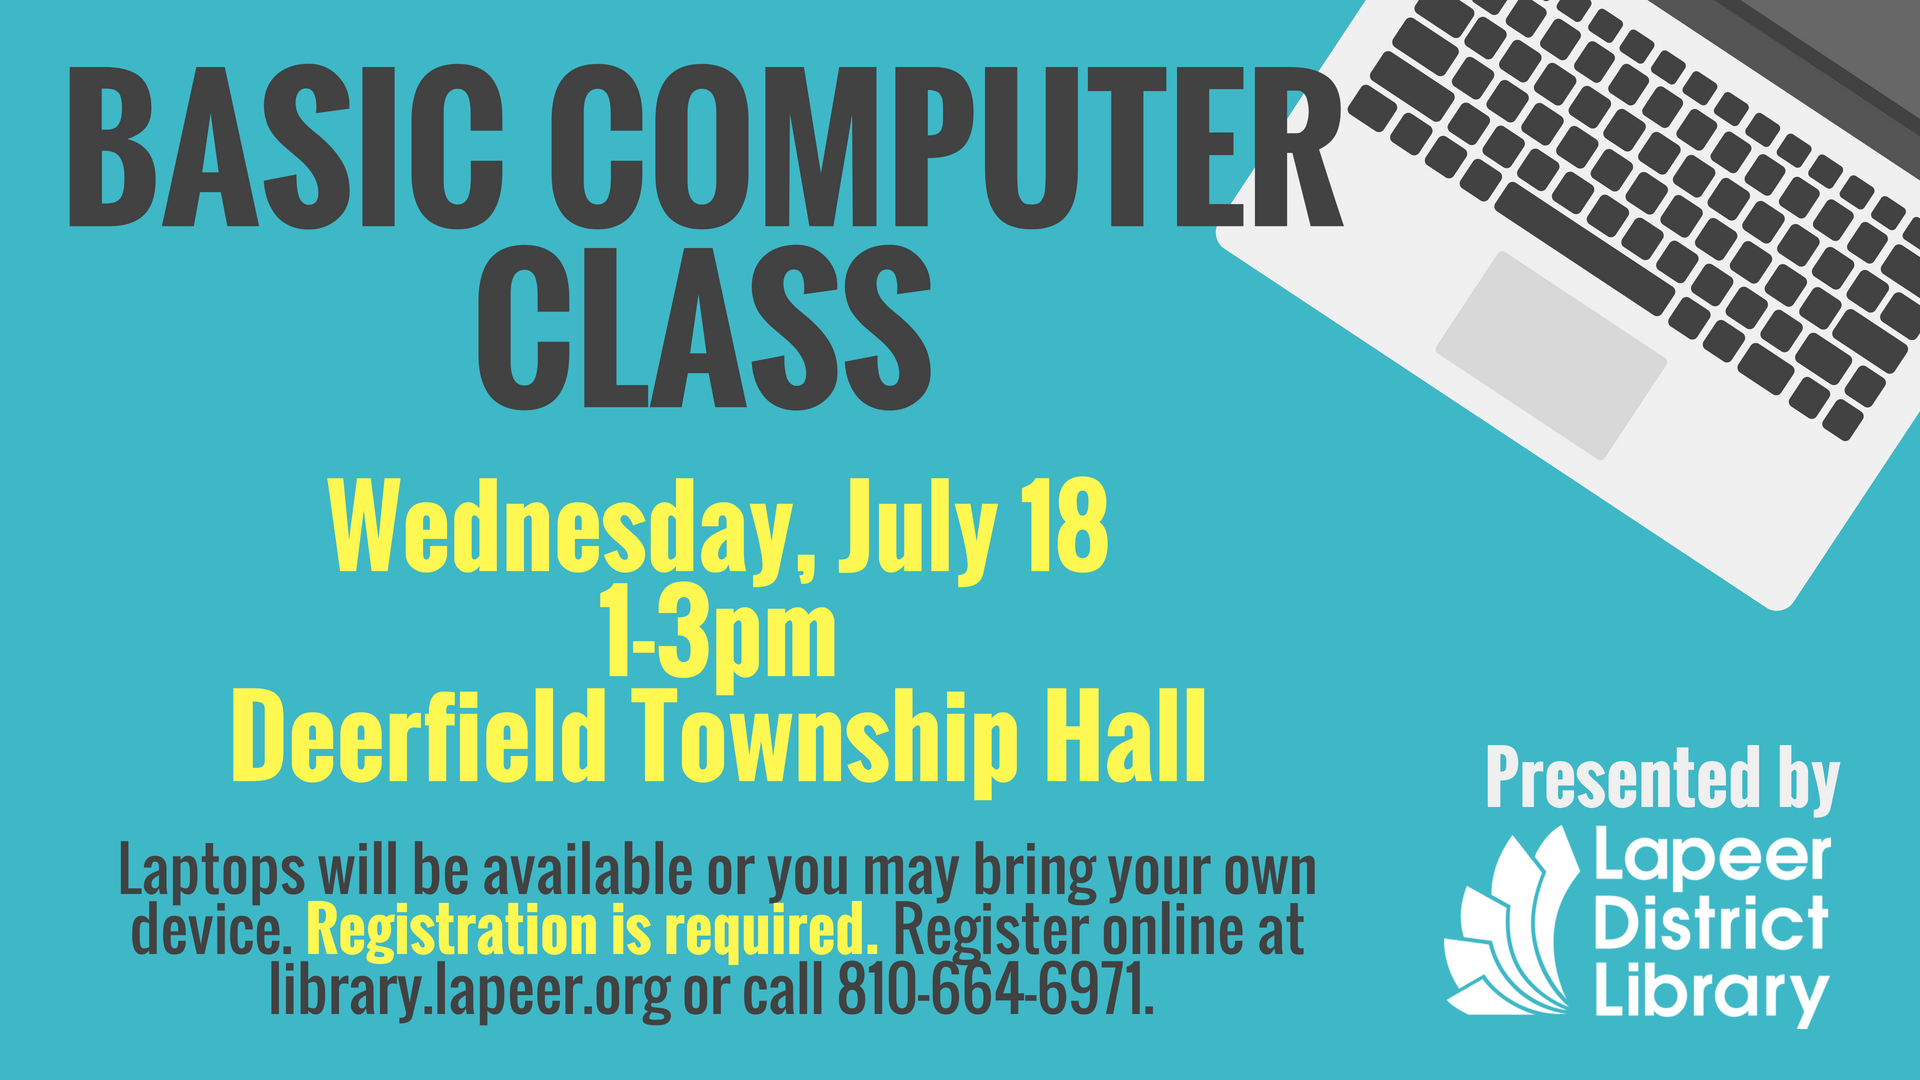 Basic Computer Class at Deerfield Township Hall - Wednesday, July 18